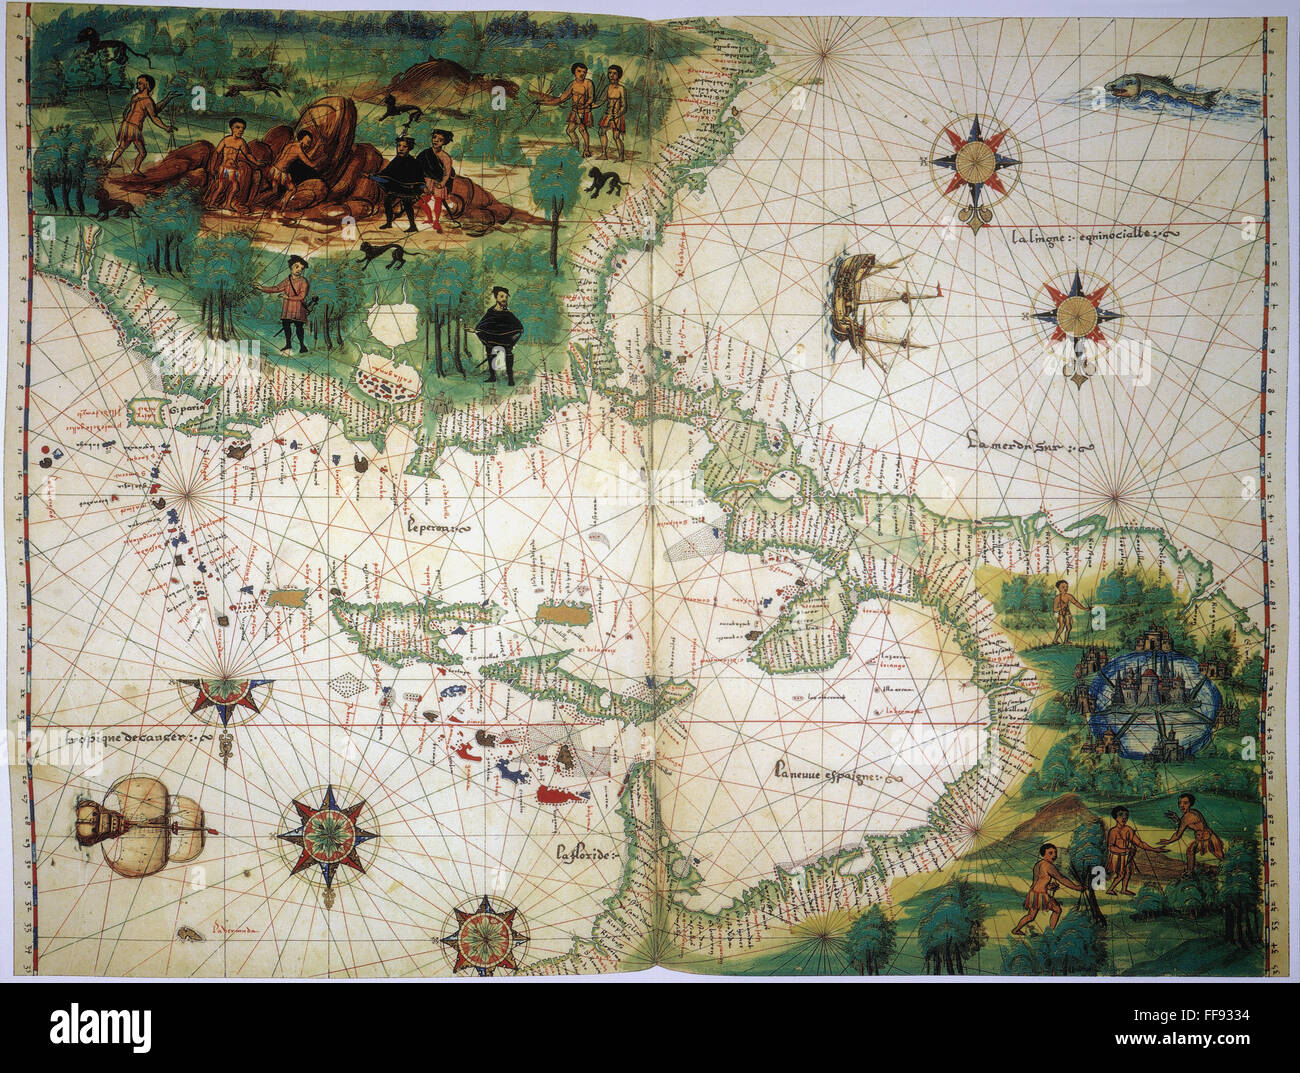 New world map 1547 nmap of the west indies and central american new world map 1547 nmap of the west indies and central american from the vallard atlas c 1547 the map drawn upside down as if viewed from europe gumiabroncs Image collections